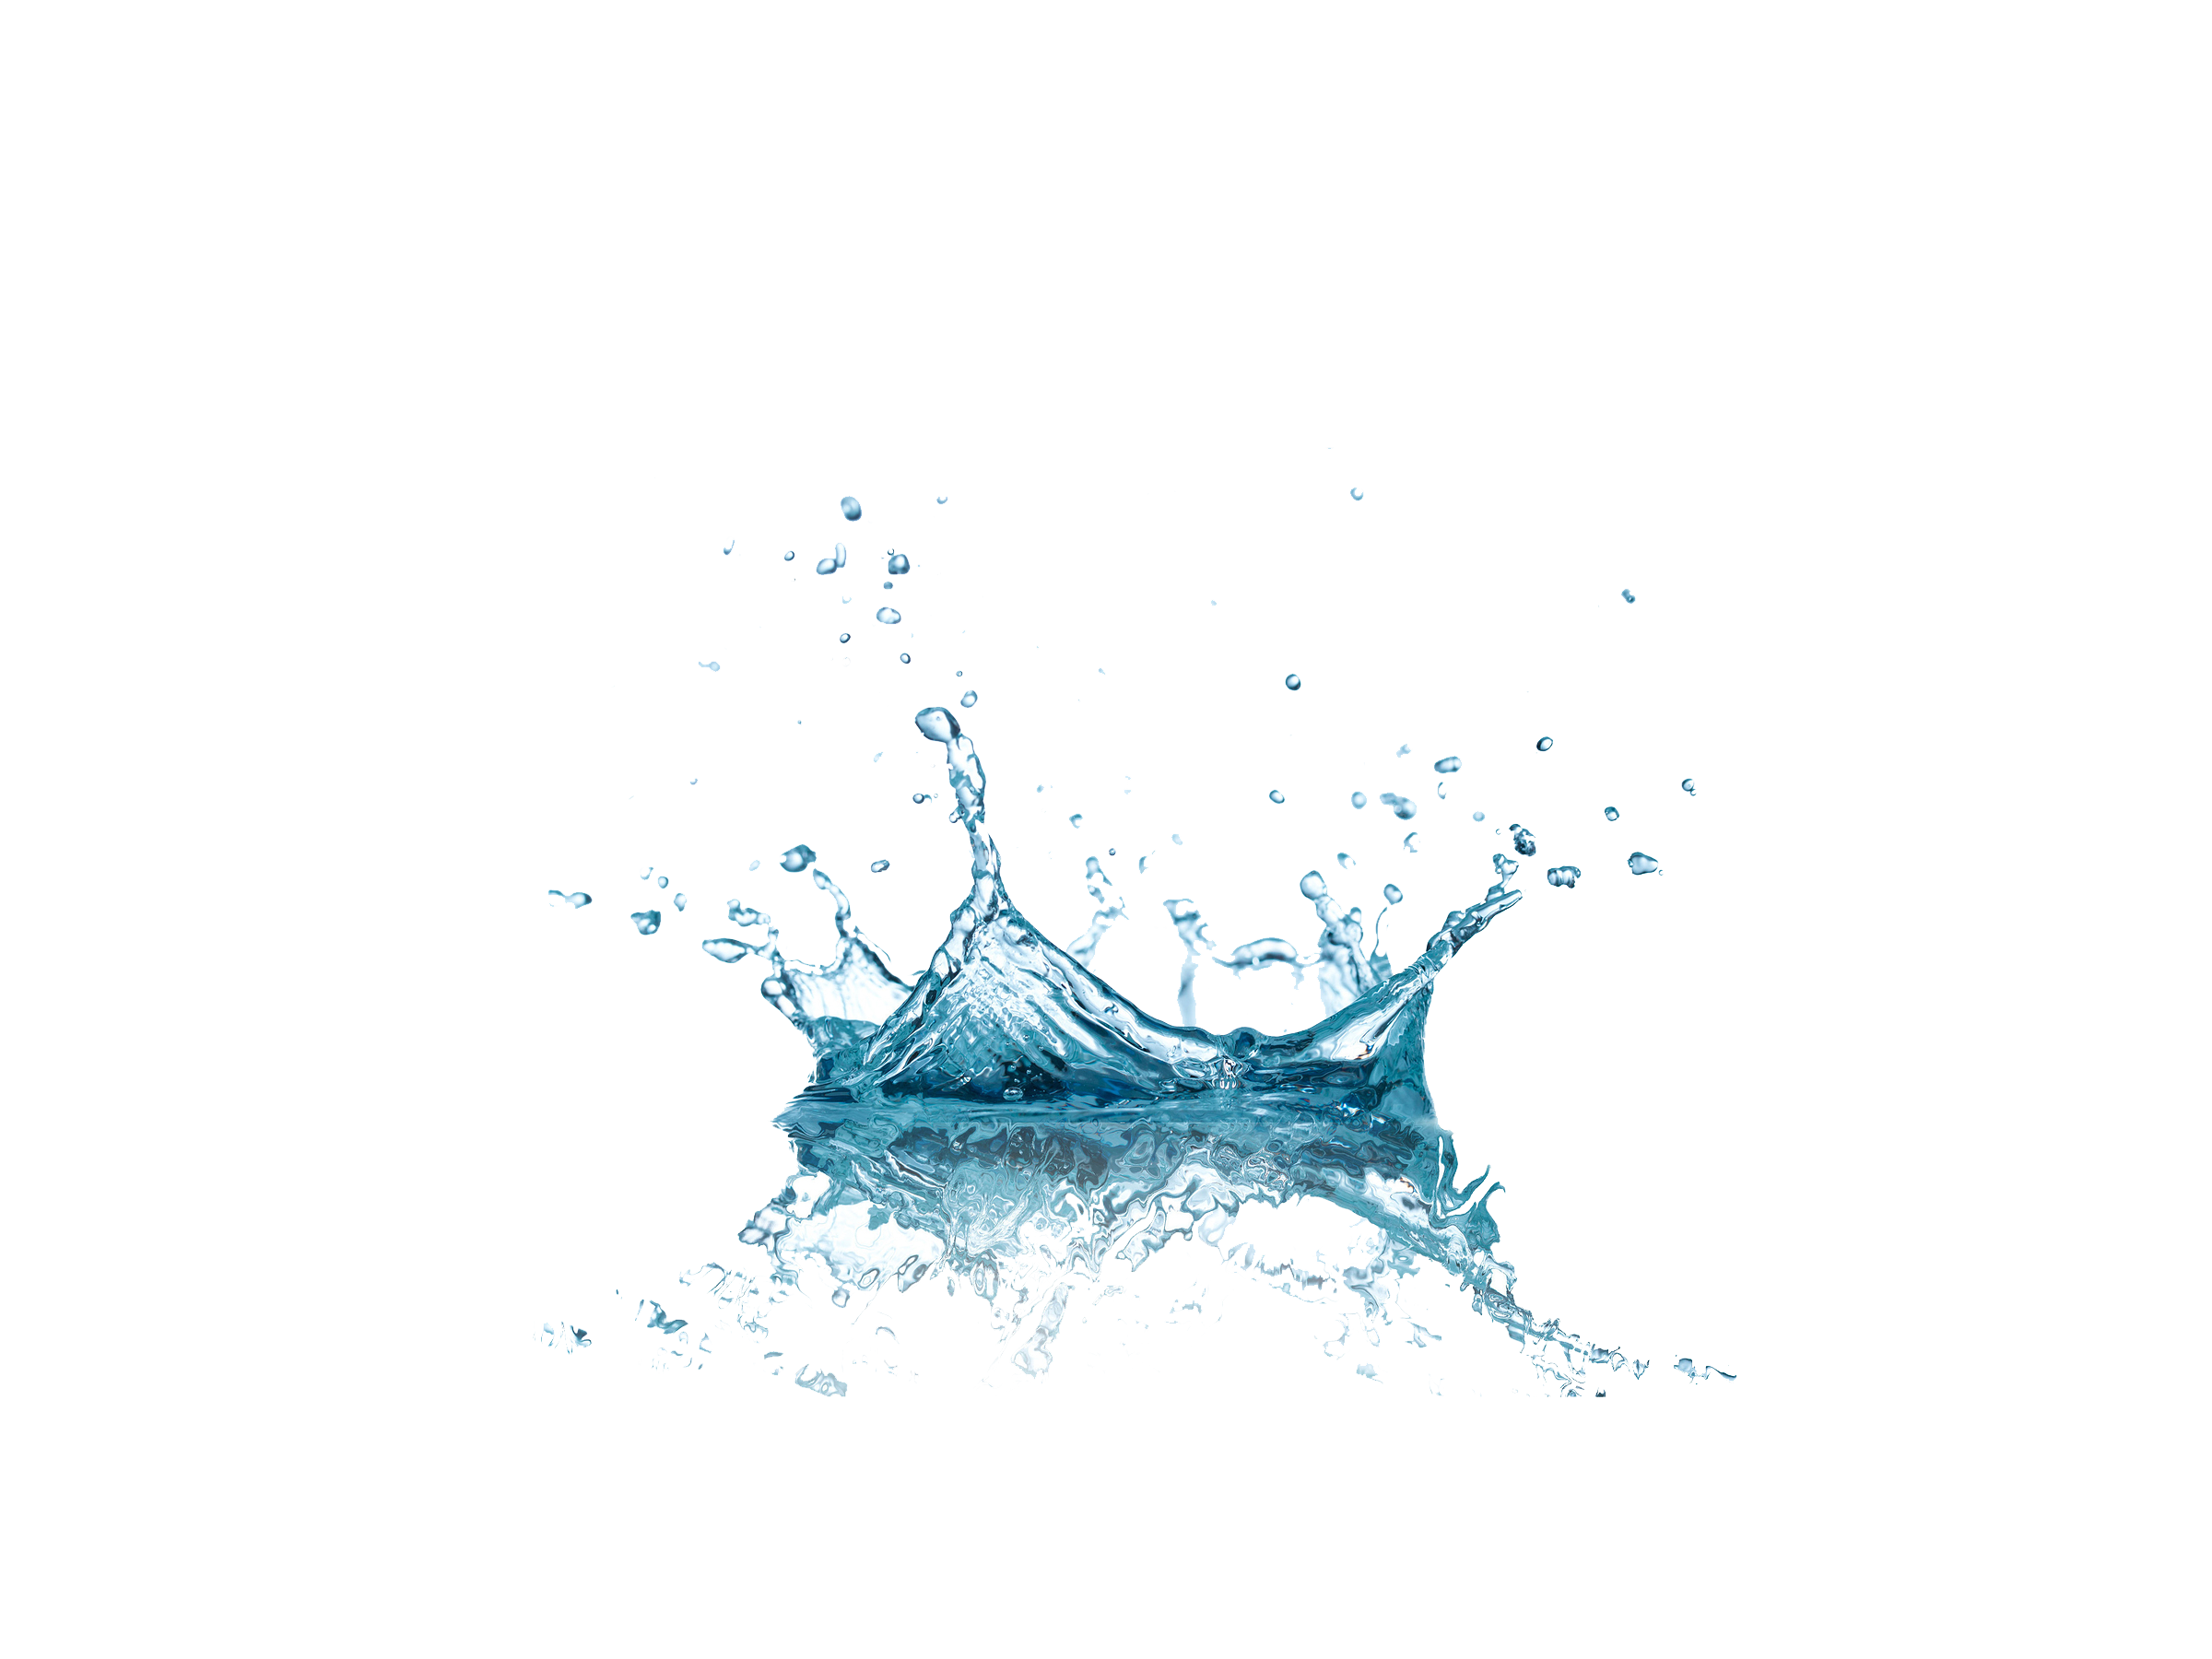 water splash png - Water Drop Splash PNG